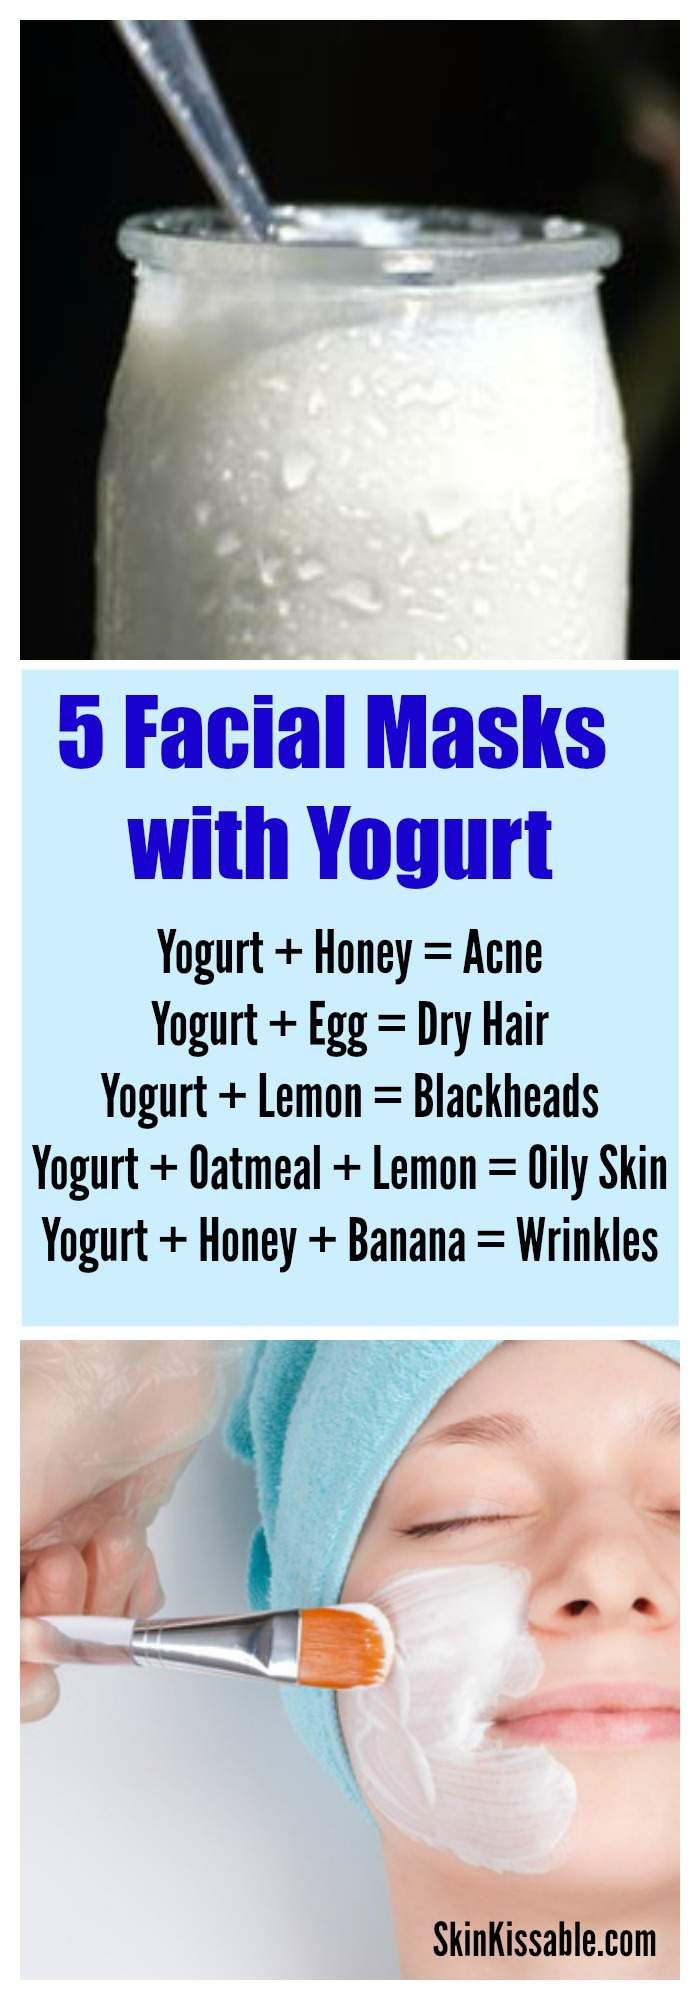 Beauty benefits of yogurt for the skin. 5 DIY mask with yogurt to clear the skin & diminish wrinkles.